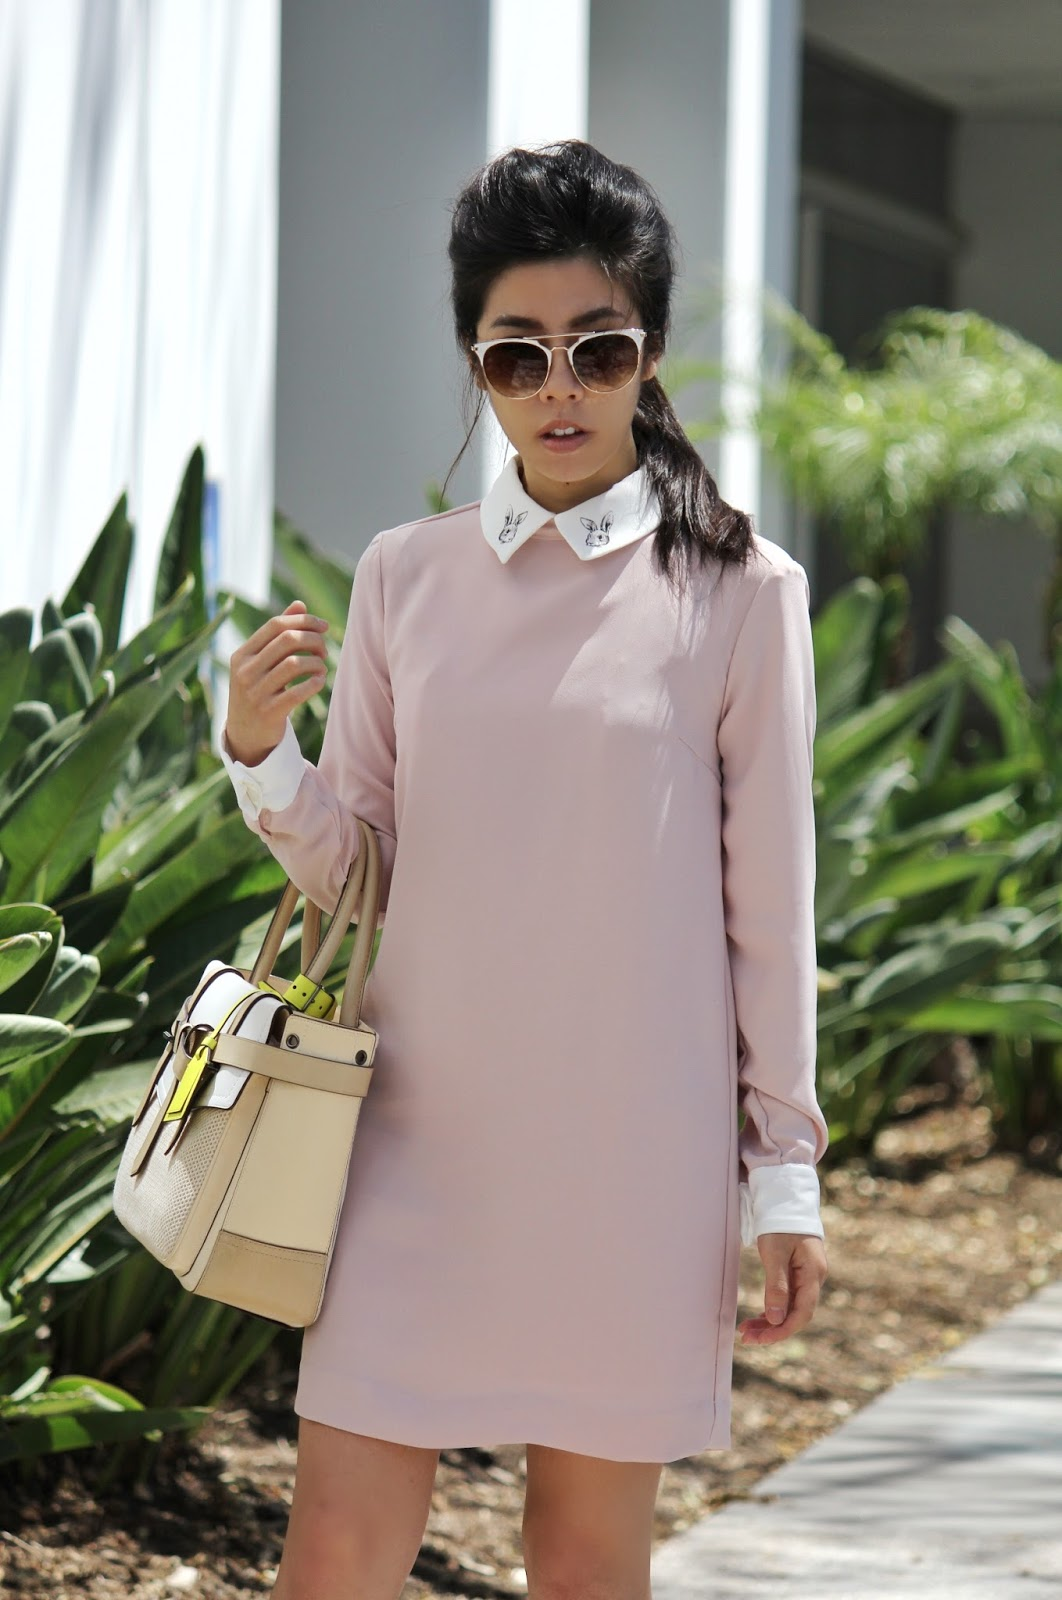 Adrienne Nguyen_Invictus_Victoria Beckham for Target Bunny Collar Pink Dress_Pink Collar Dress_How to wear Pastels at Work_What to Wear to Work in the Summer